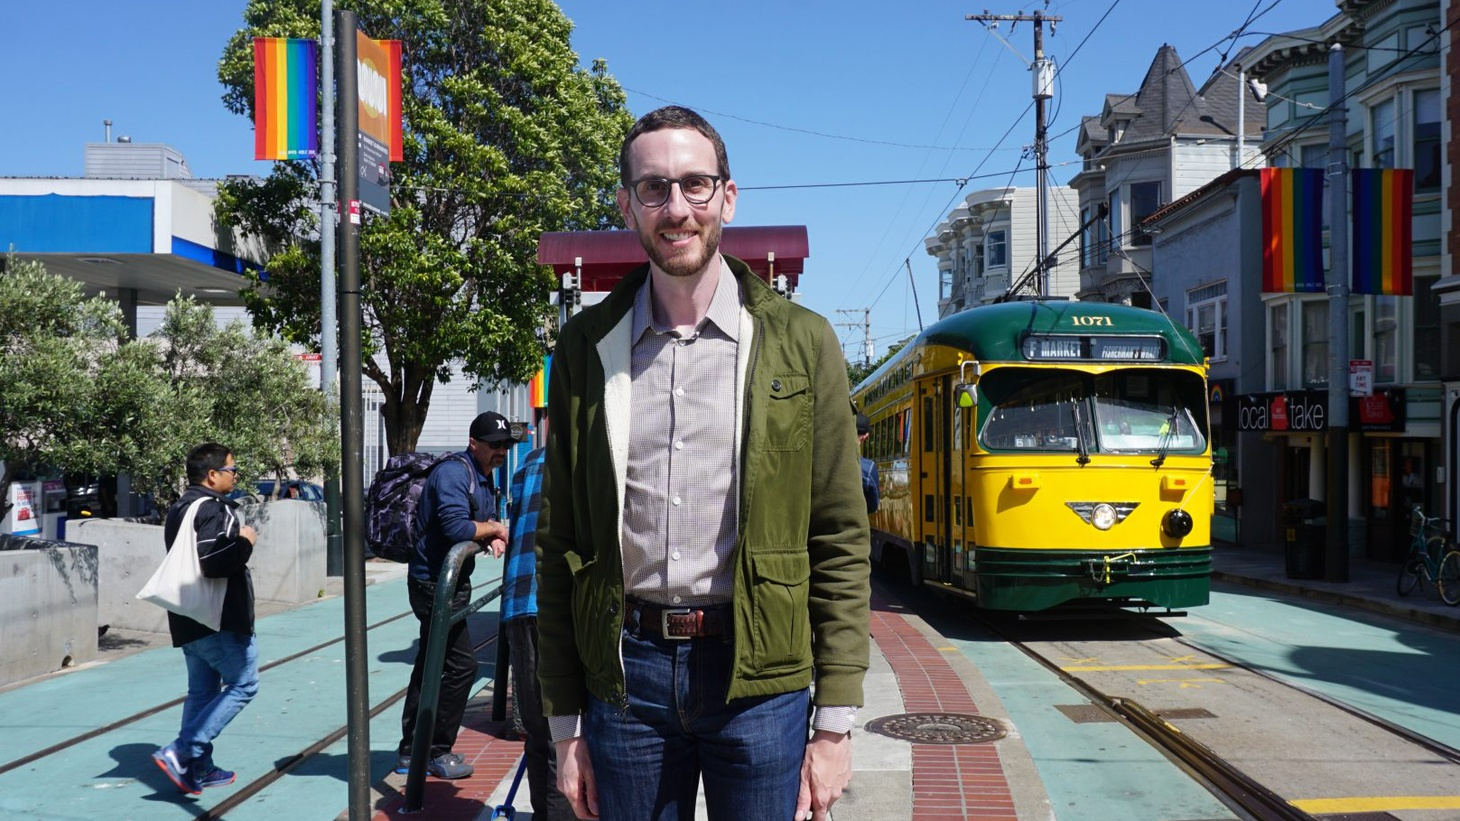 California is in the grip of a tightening housing crisis, in response California State Senator Scott Wiener of San Francisco has introduced legislation in Sacramento called the Transit Zoning Bill, or Senate Bill 827.